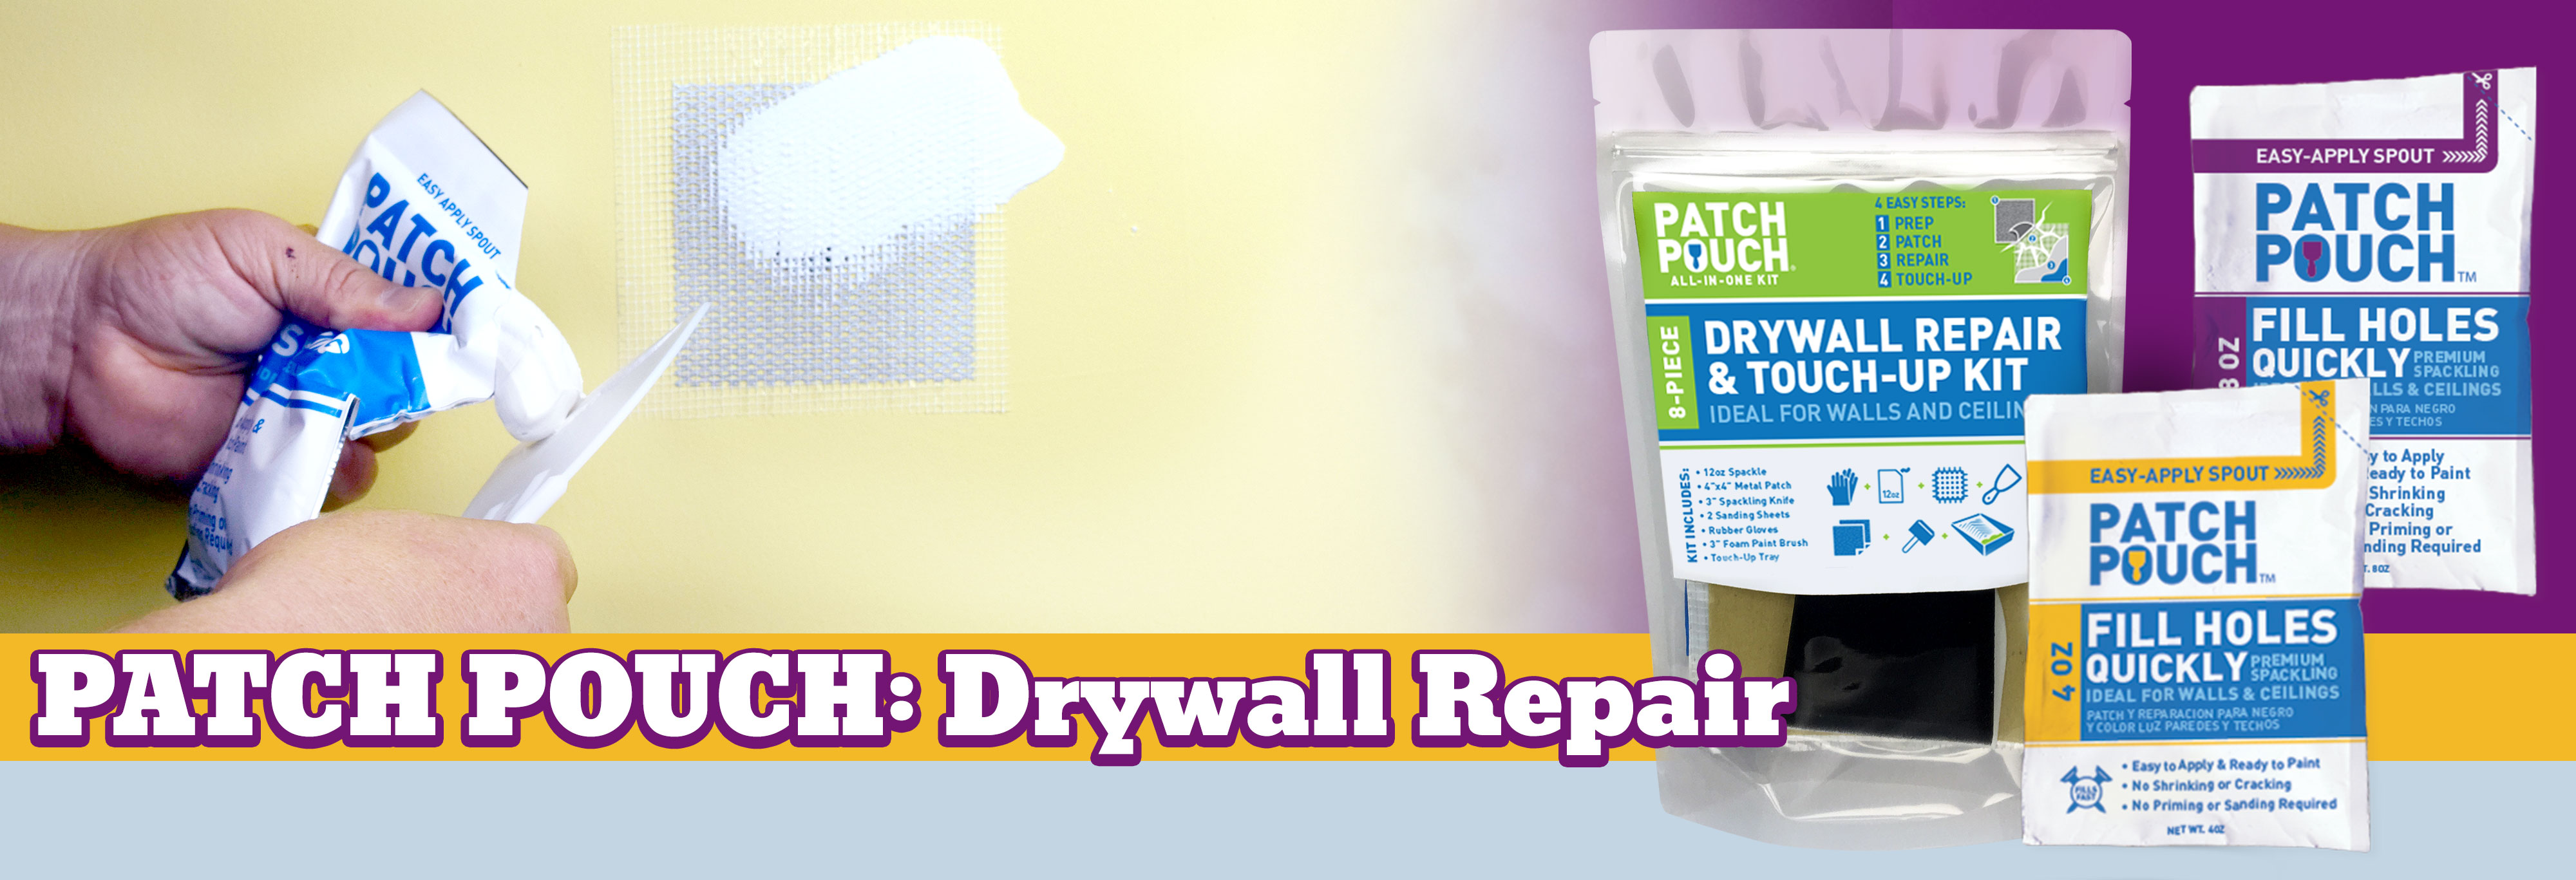 PureSky Products Patch Pouch Drywall Repair